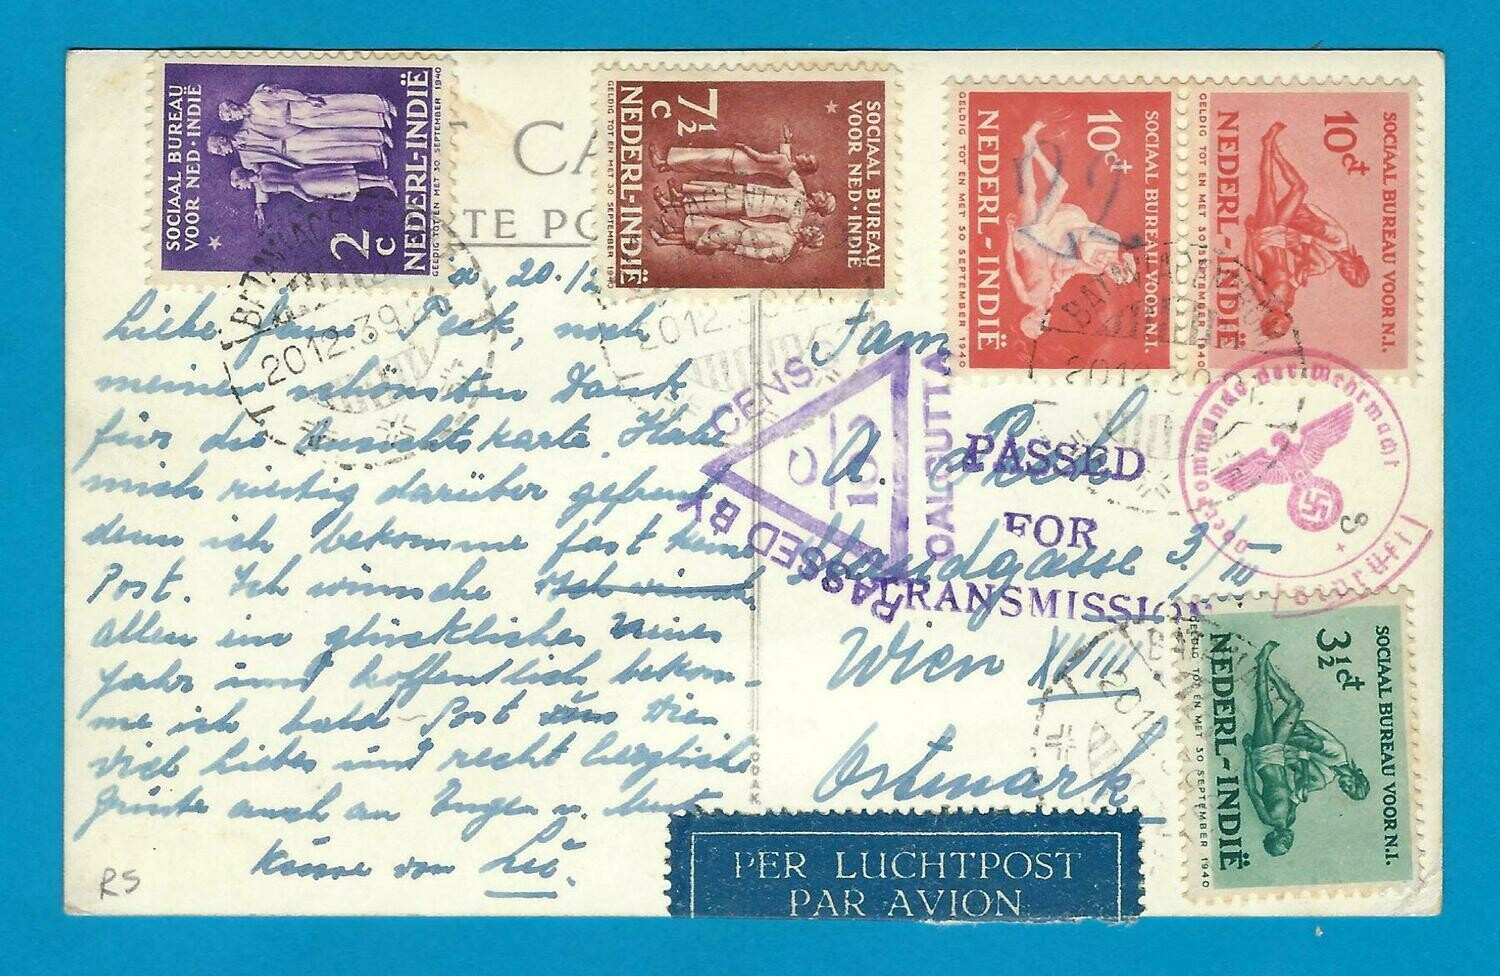 NETHERLANDS EAST INDIES censored PPC 1939 Batavia to Austria